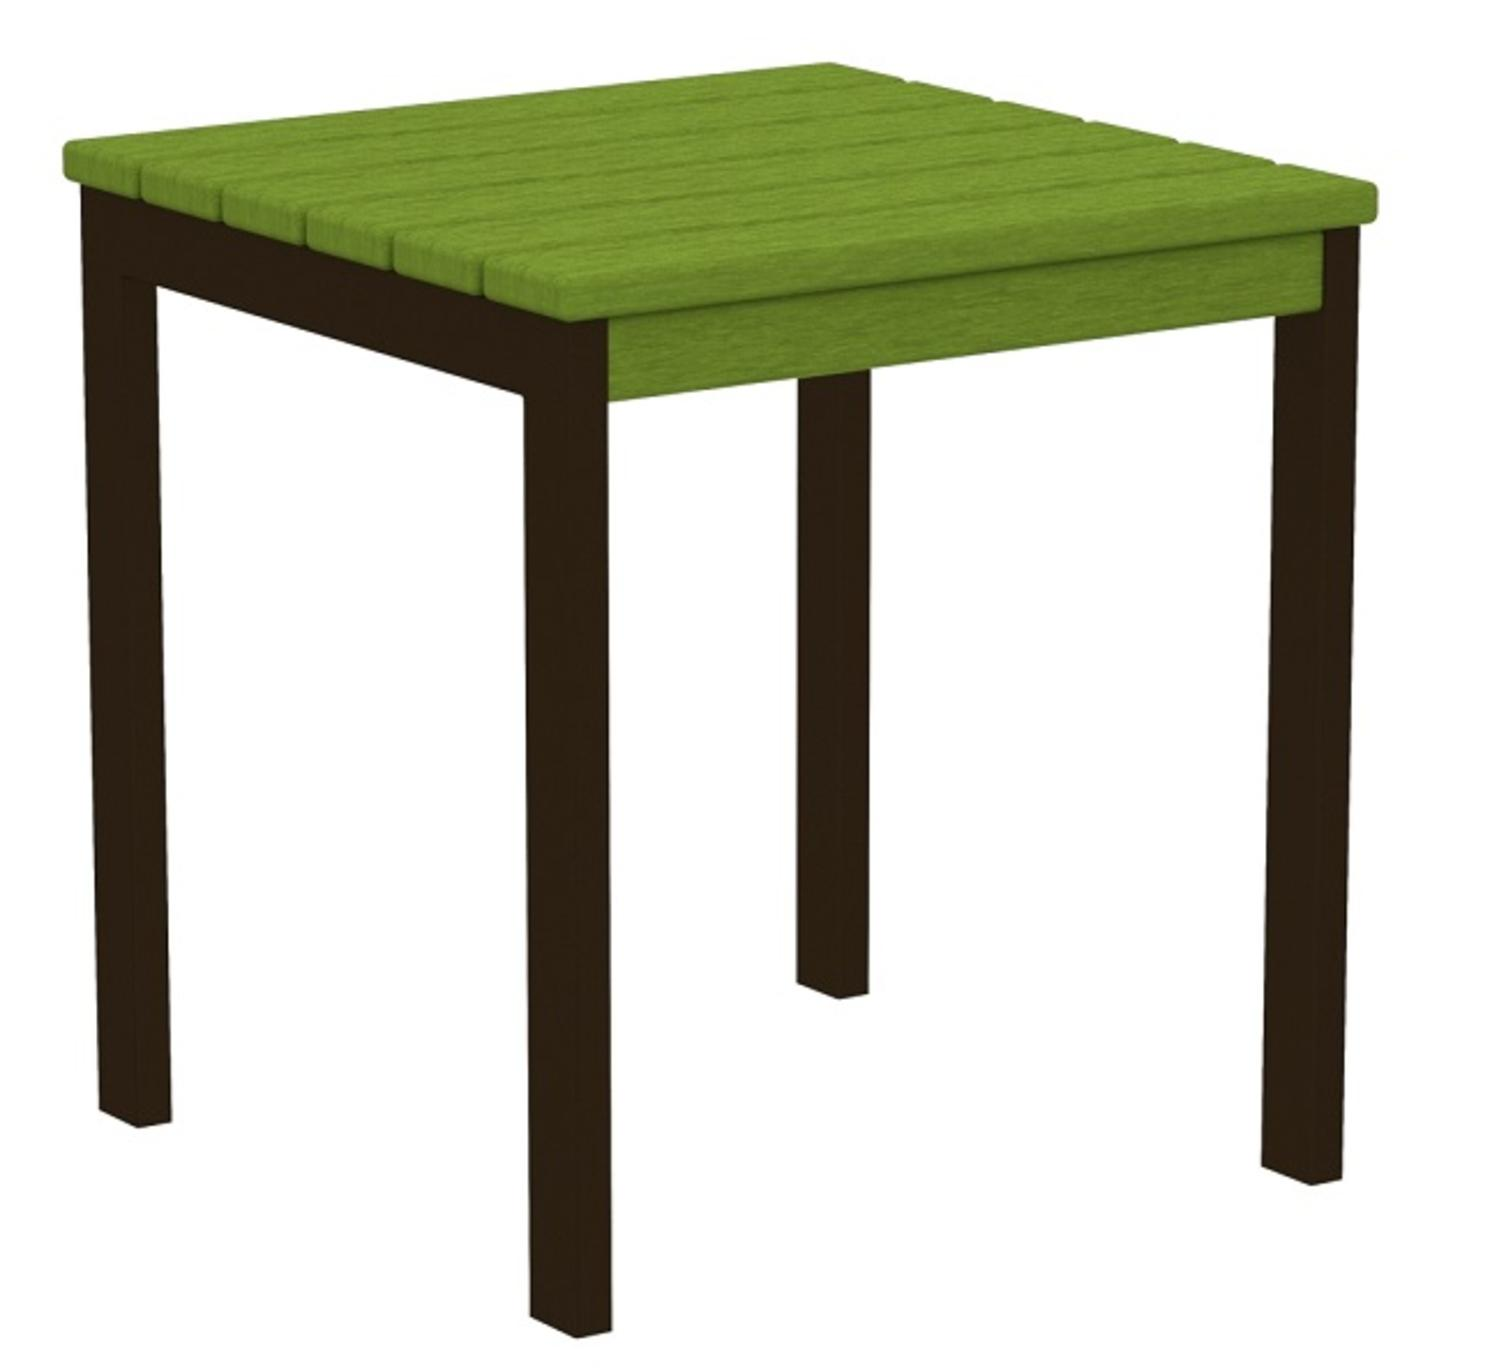 "18"" Recycled Earth-Friendly Square Side Table - Lime Green with Bronze Frame"